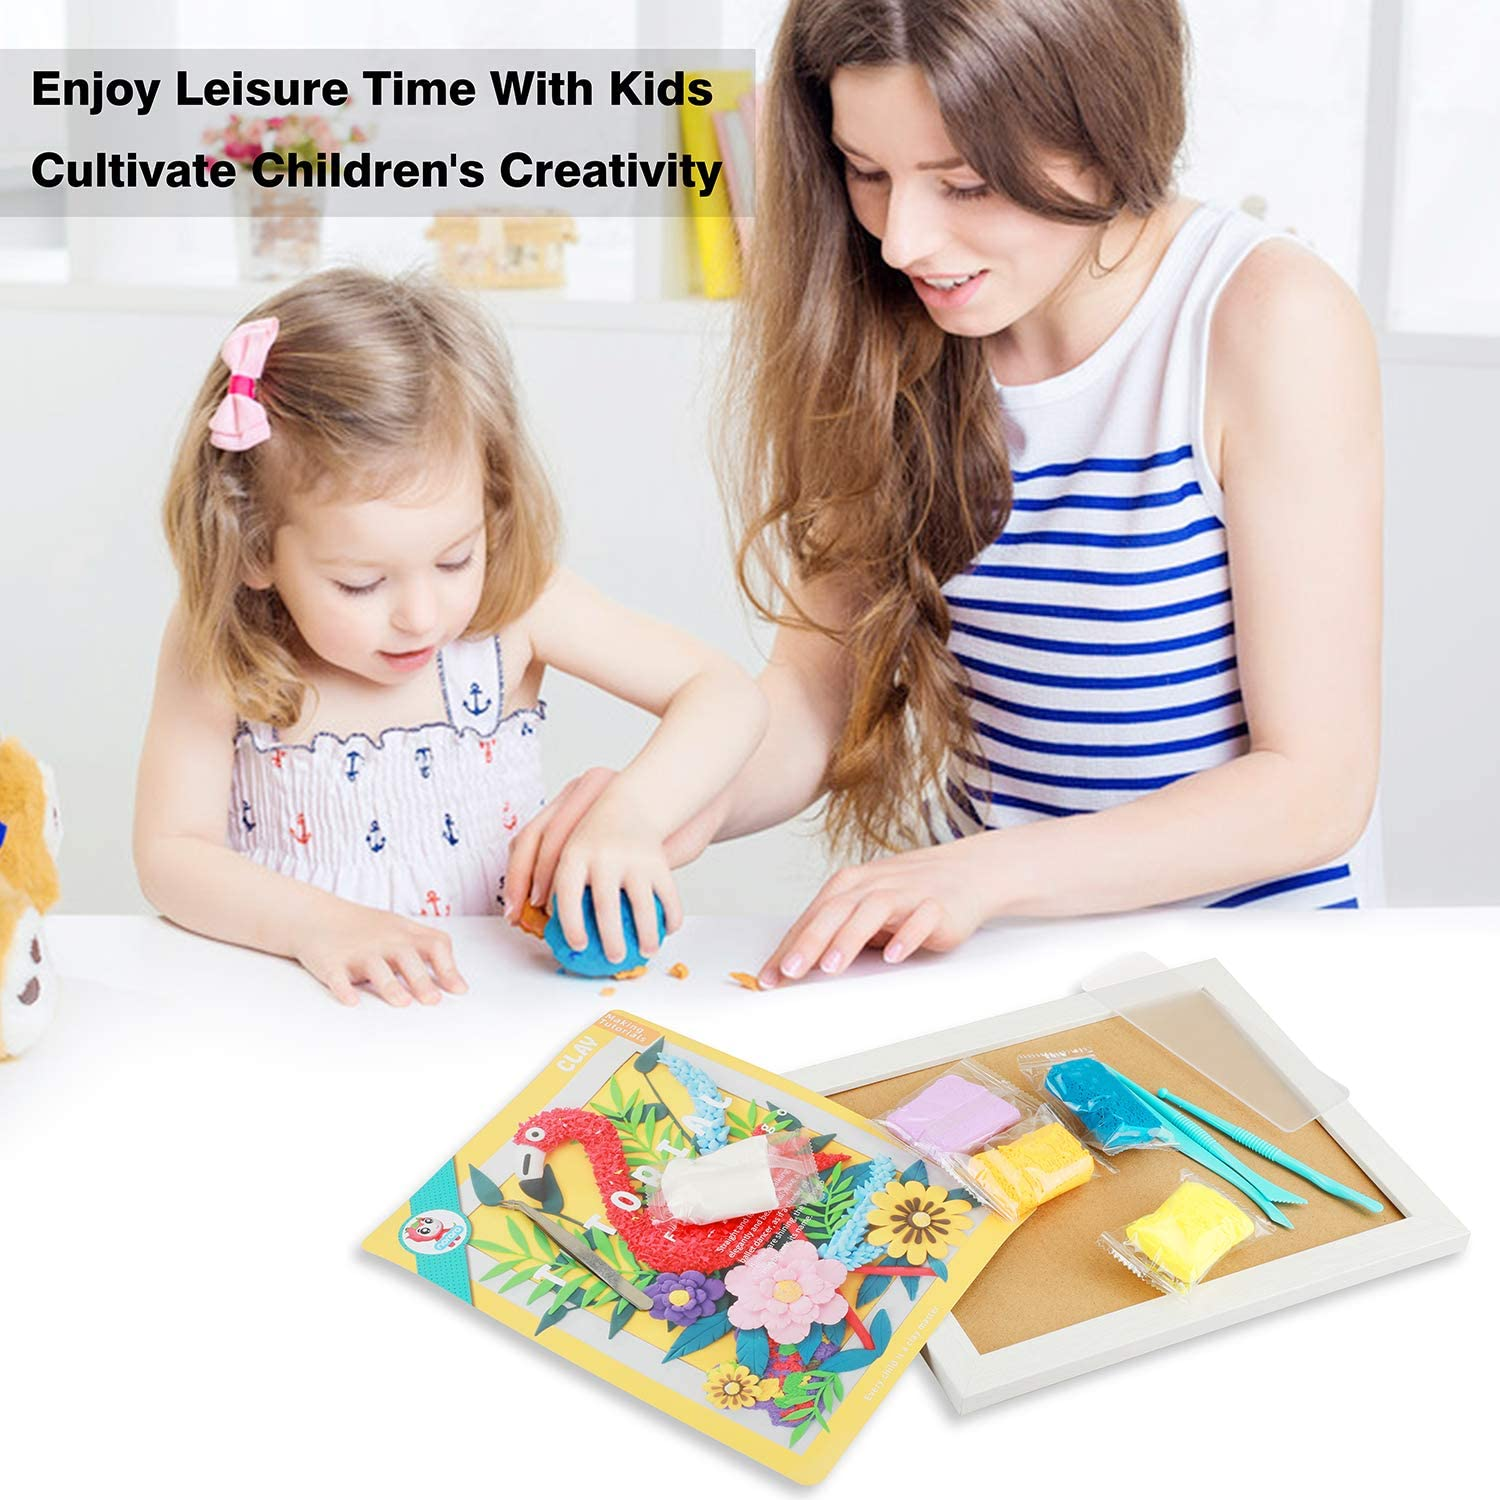 ideallife Handmade Molding Clay Photo Frame Painting Set Air Dry Modeling Clay Paiting Educational Set The Rain of Carrots Christmas Birthday Gift for Boys Girls Creative Arts Crafts Set for Kids